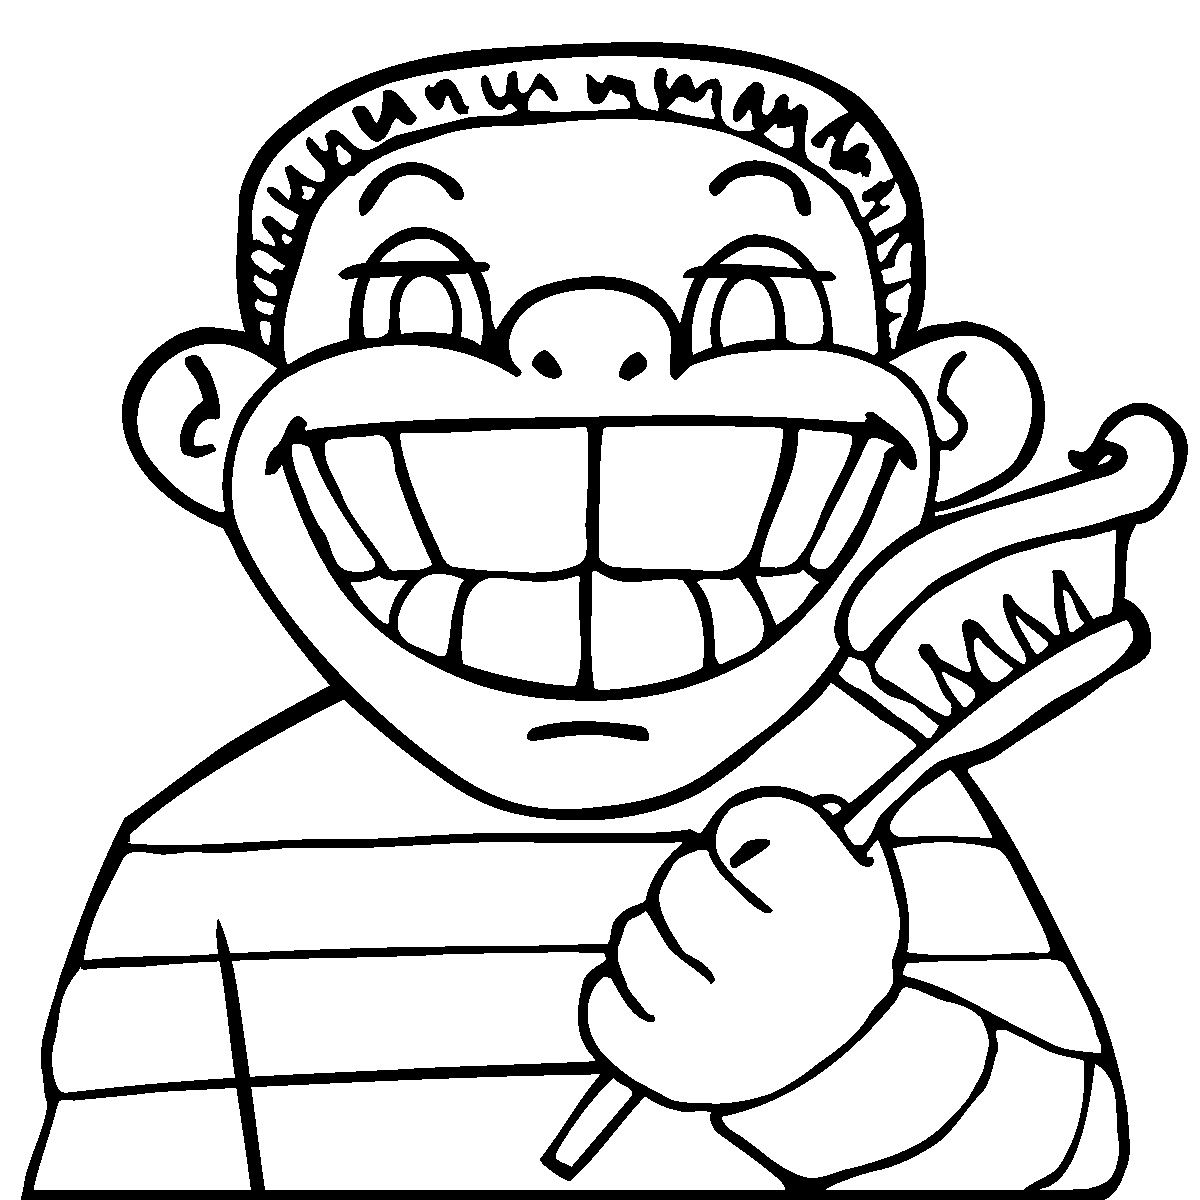 Colouring in pages dental - Daily Activities And Life Skills Clip Art For Teachers Parents Dental Health Coloring Pages